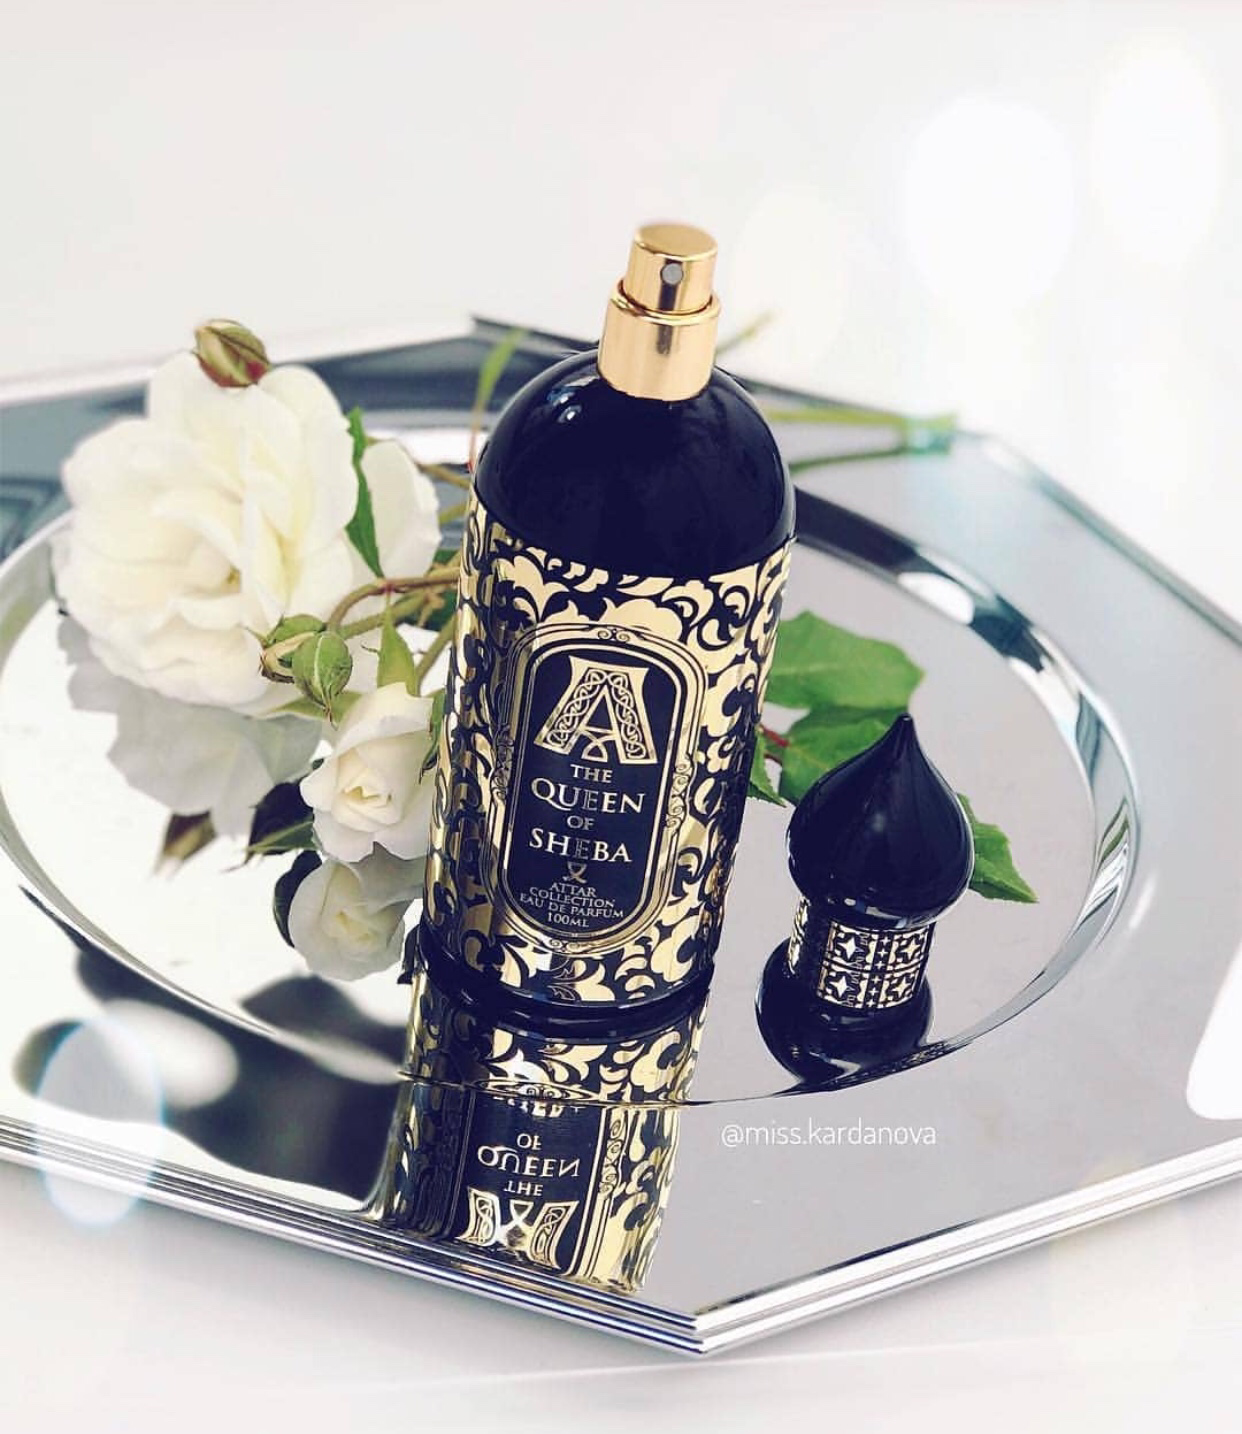 Attar Collection - The Queen of Sheba